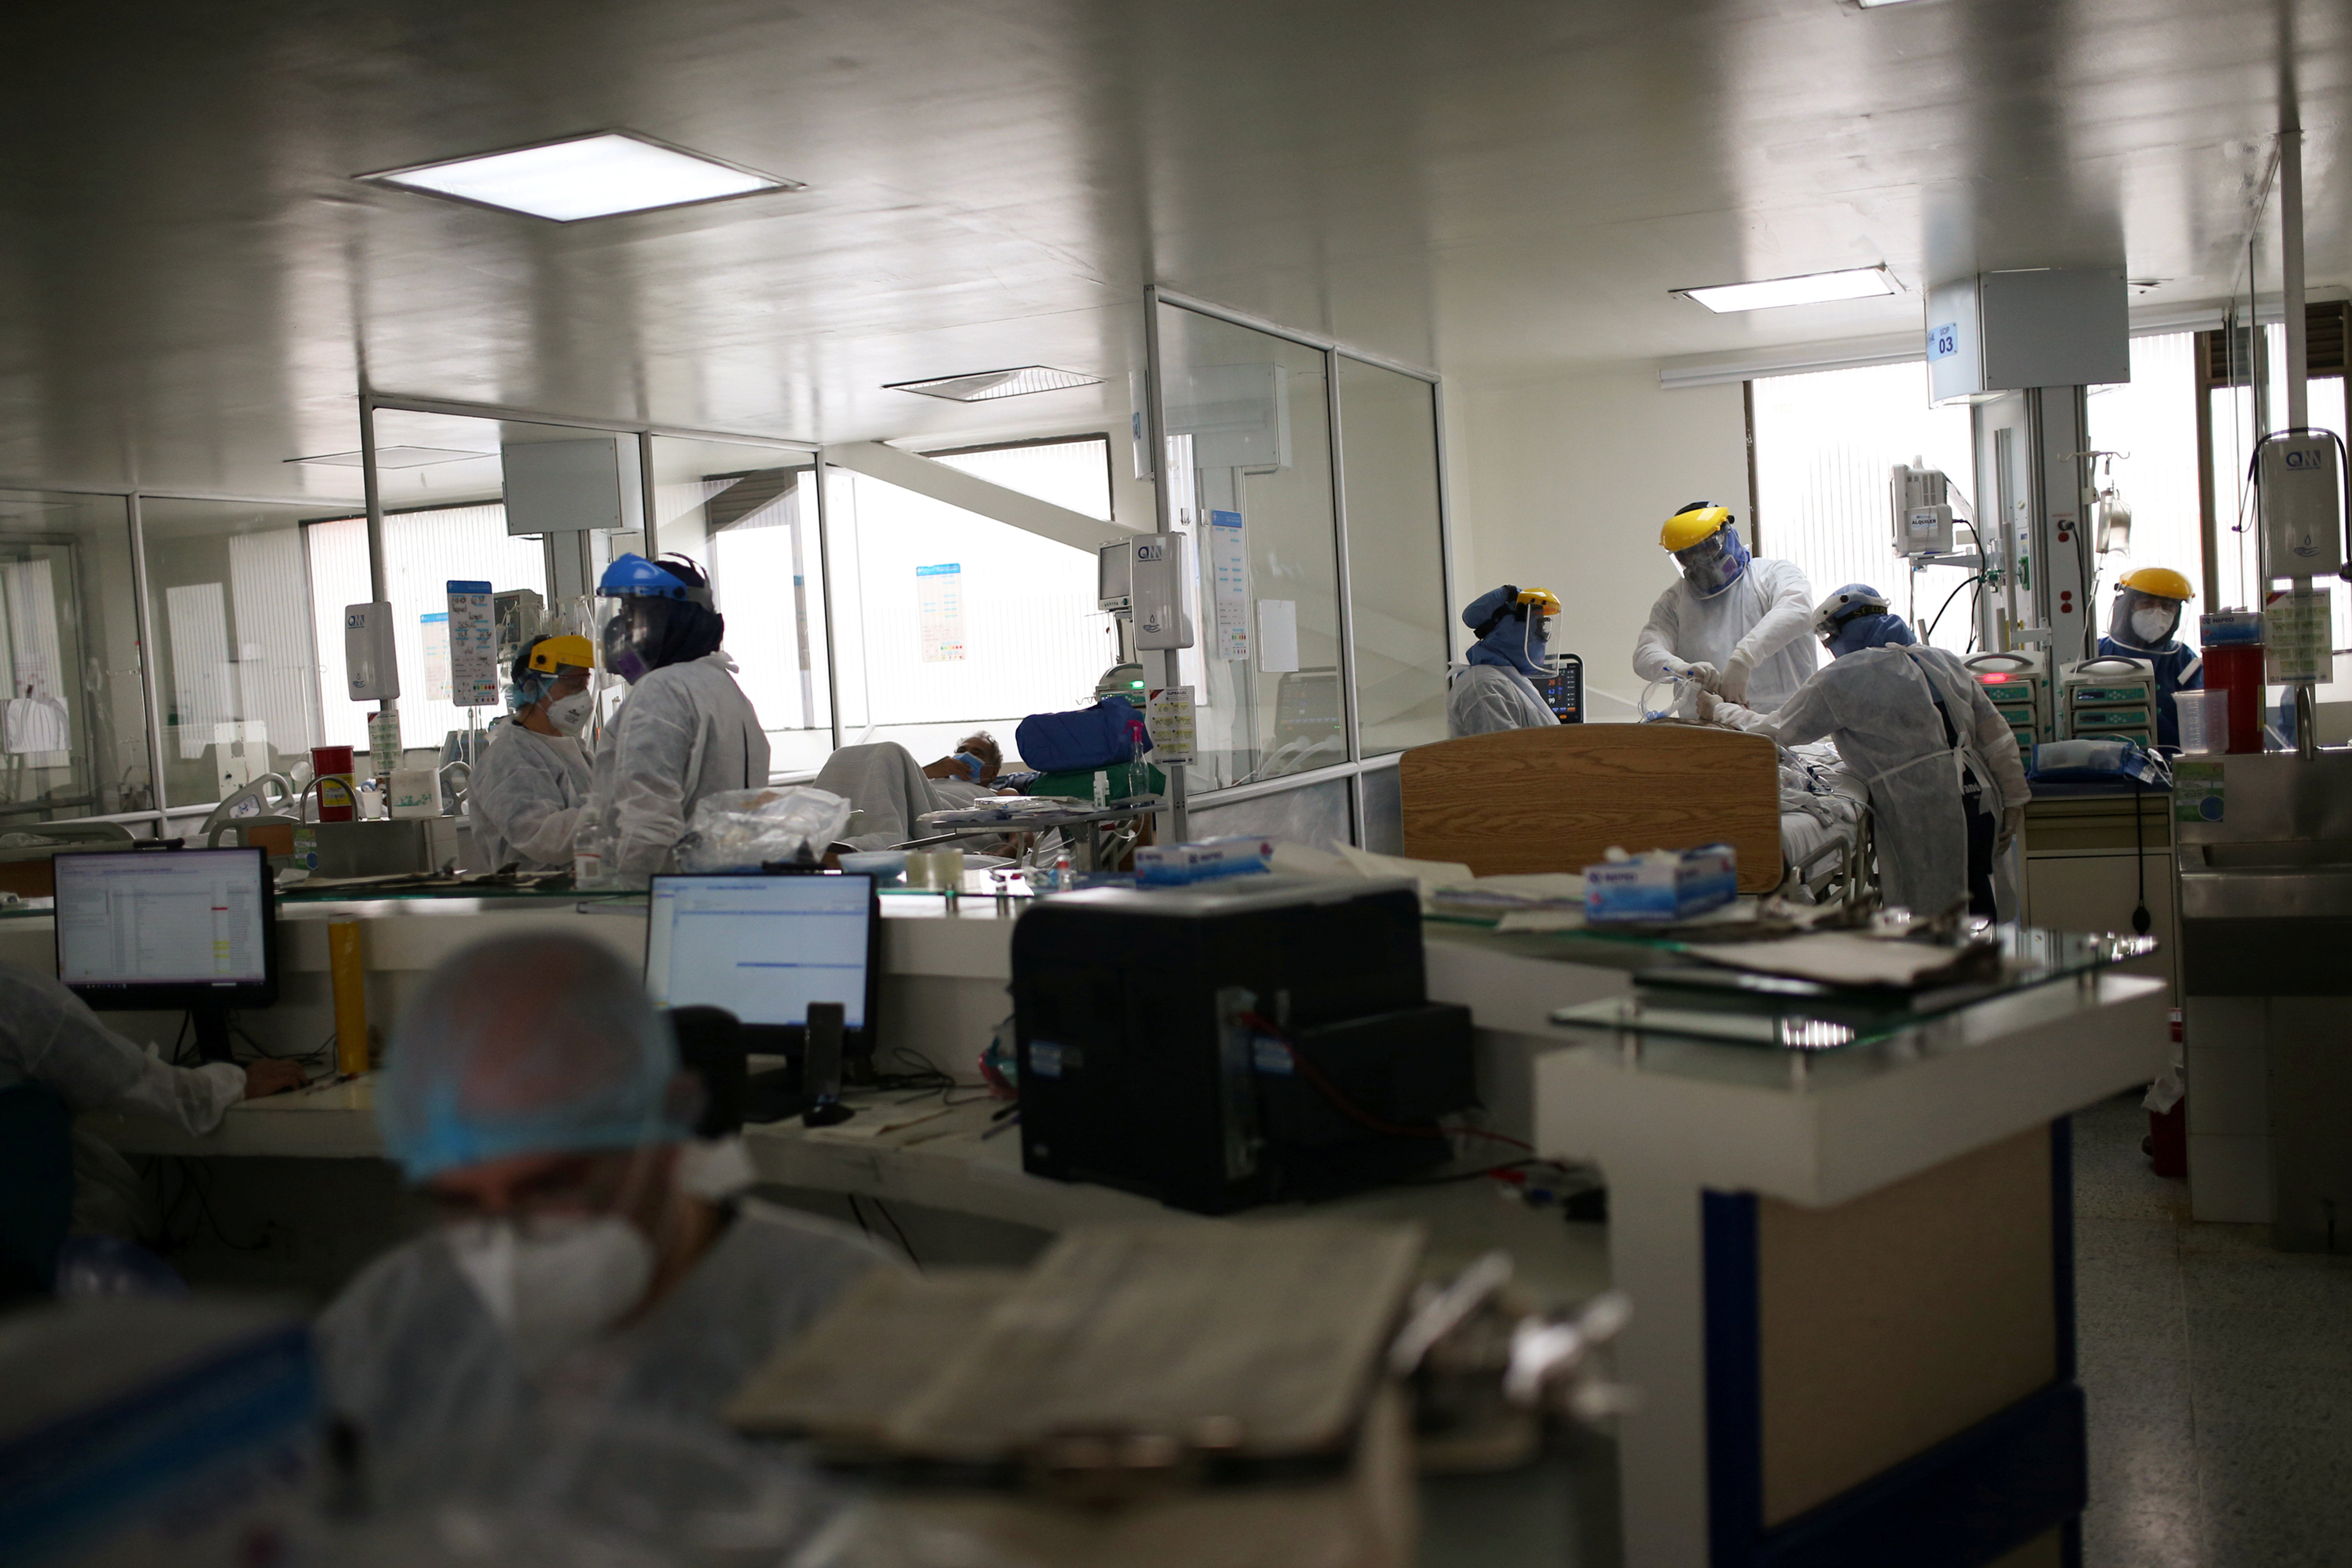 Doctors and nurses are seen inside the Intensive Care Unit (ICU) of the El Tunal hospital, where they treat patients suffering from the coronavirus disease (COVID-19), in Bogota, Colombia June 12, 2020. Picture taken June 12, 2020. REUTERS/Luisa Gonzalez